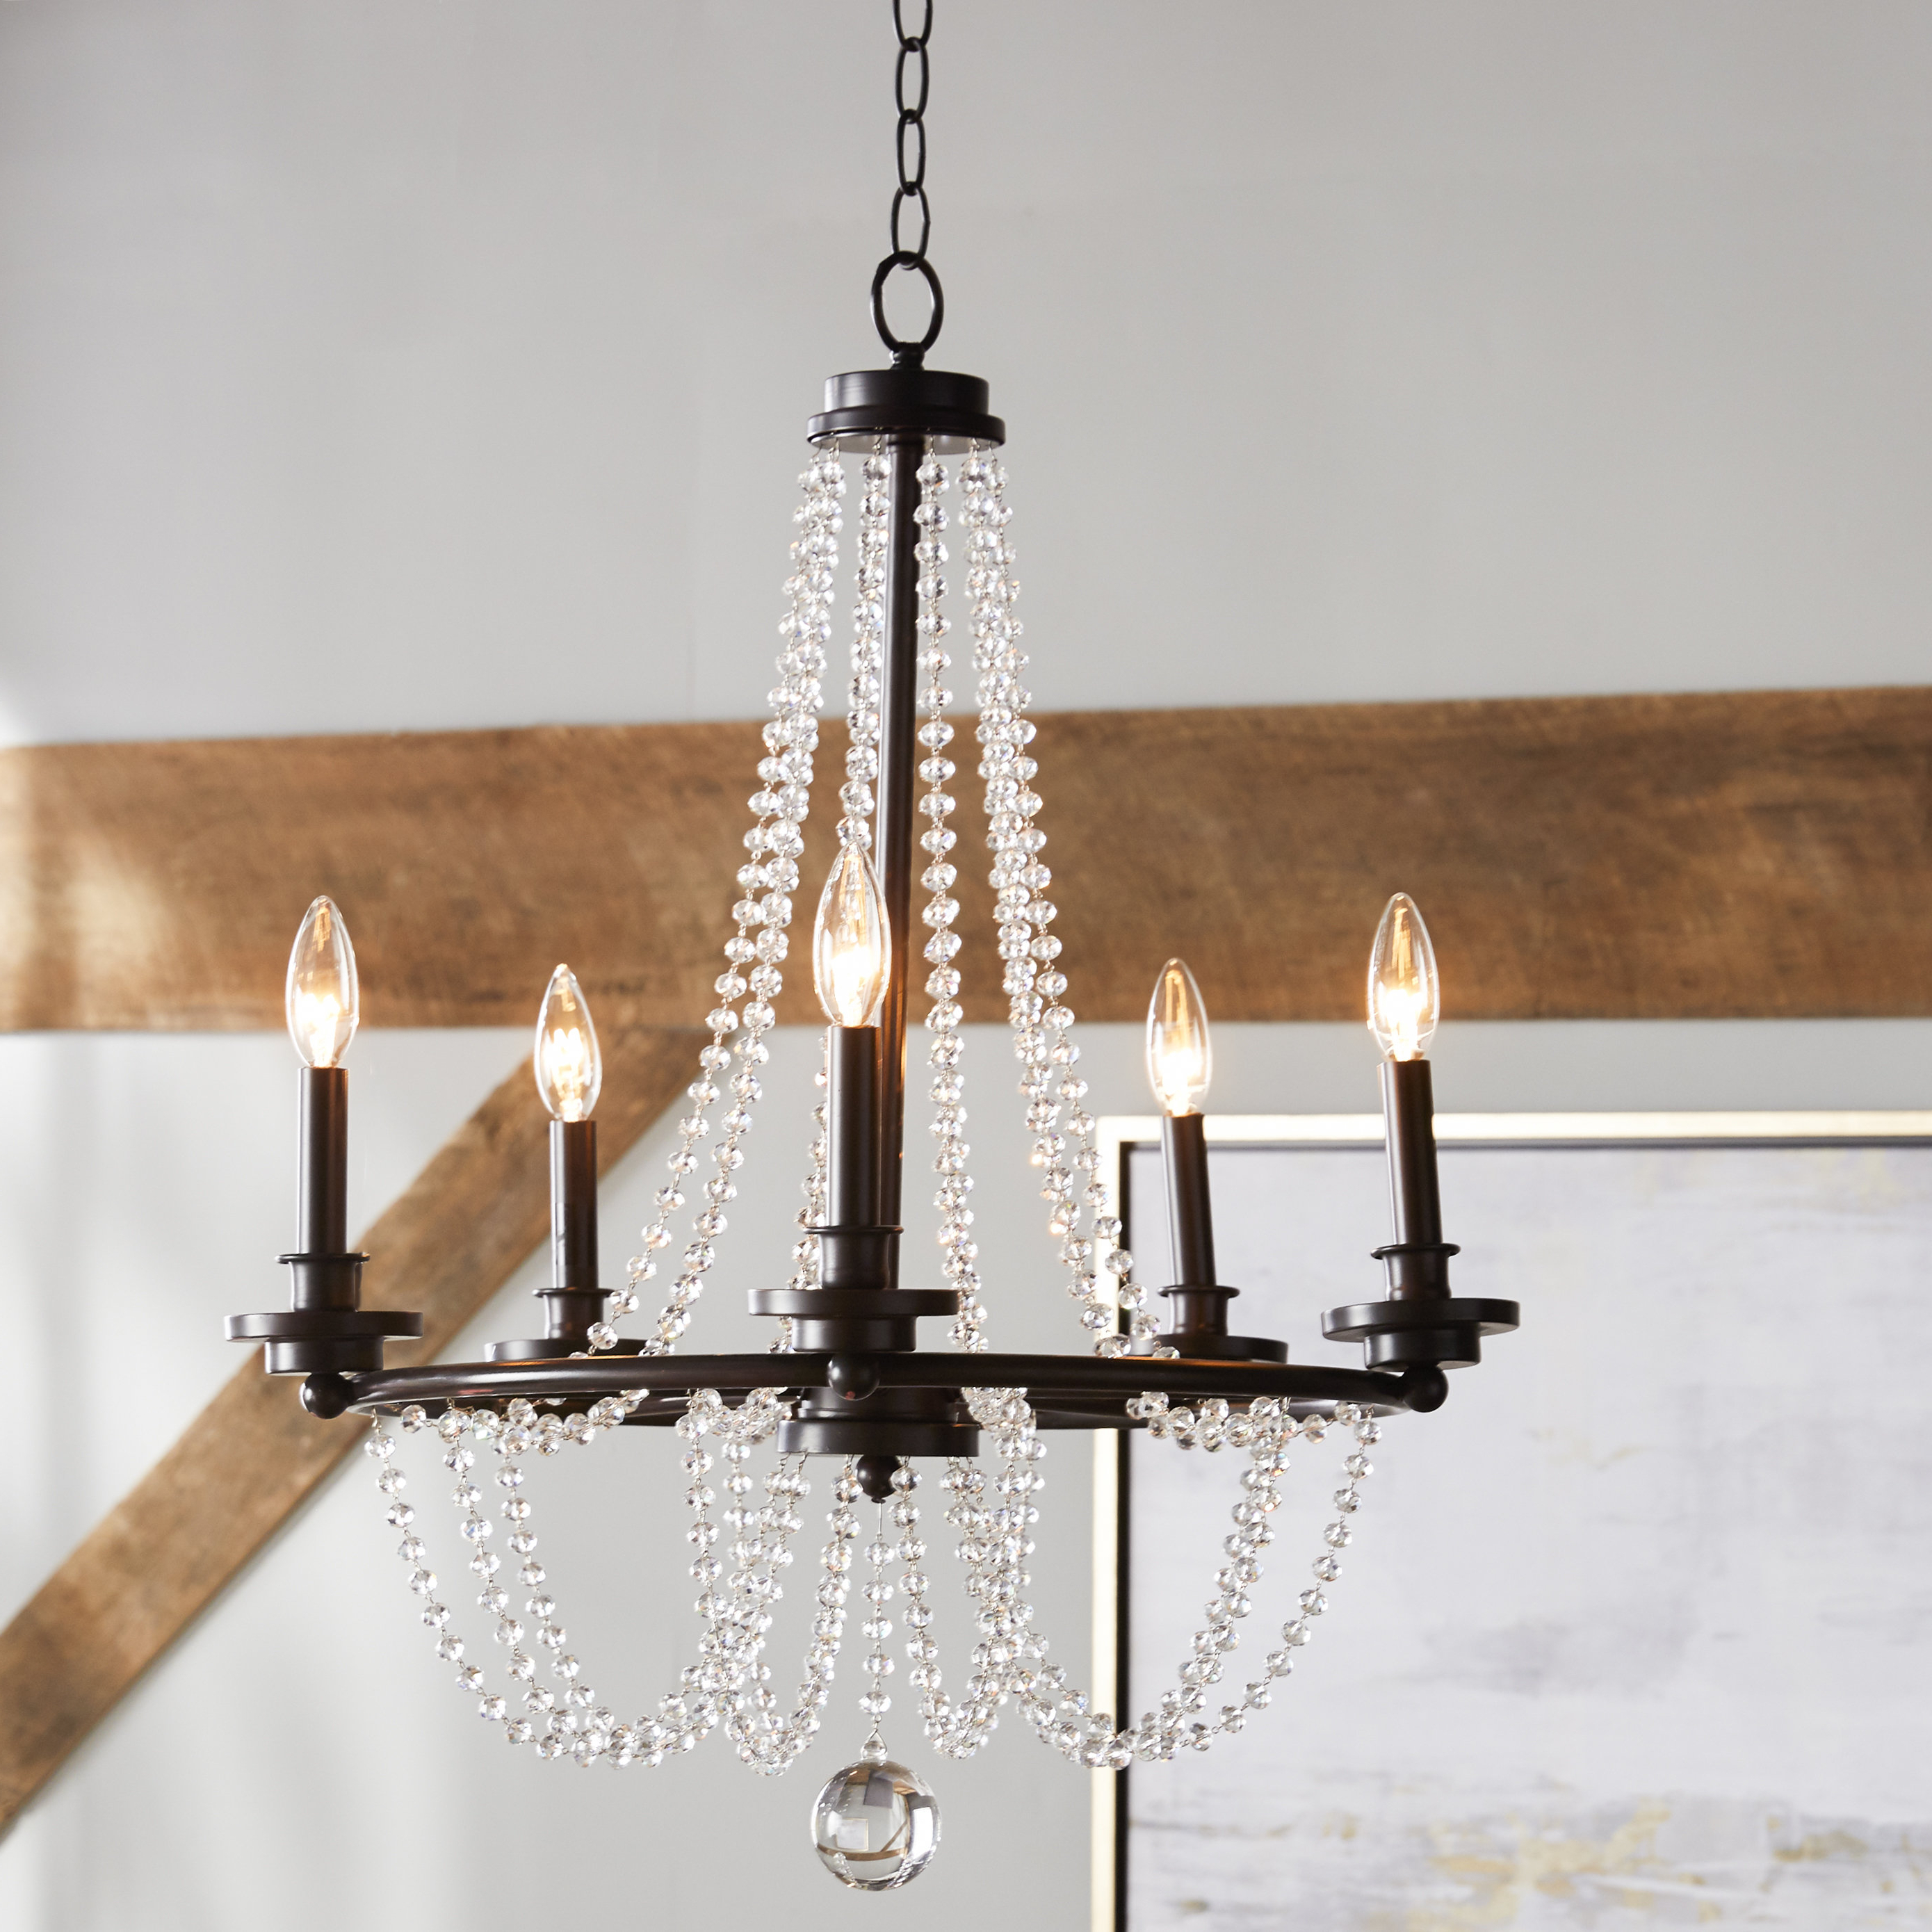 Widely Used Corneau 5 Light Chandeliers For One Allium Way Byromville 5 Light Chandelier (Gallery 6 of 20)